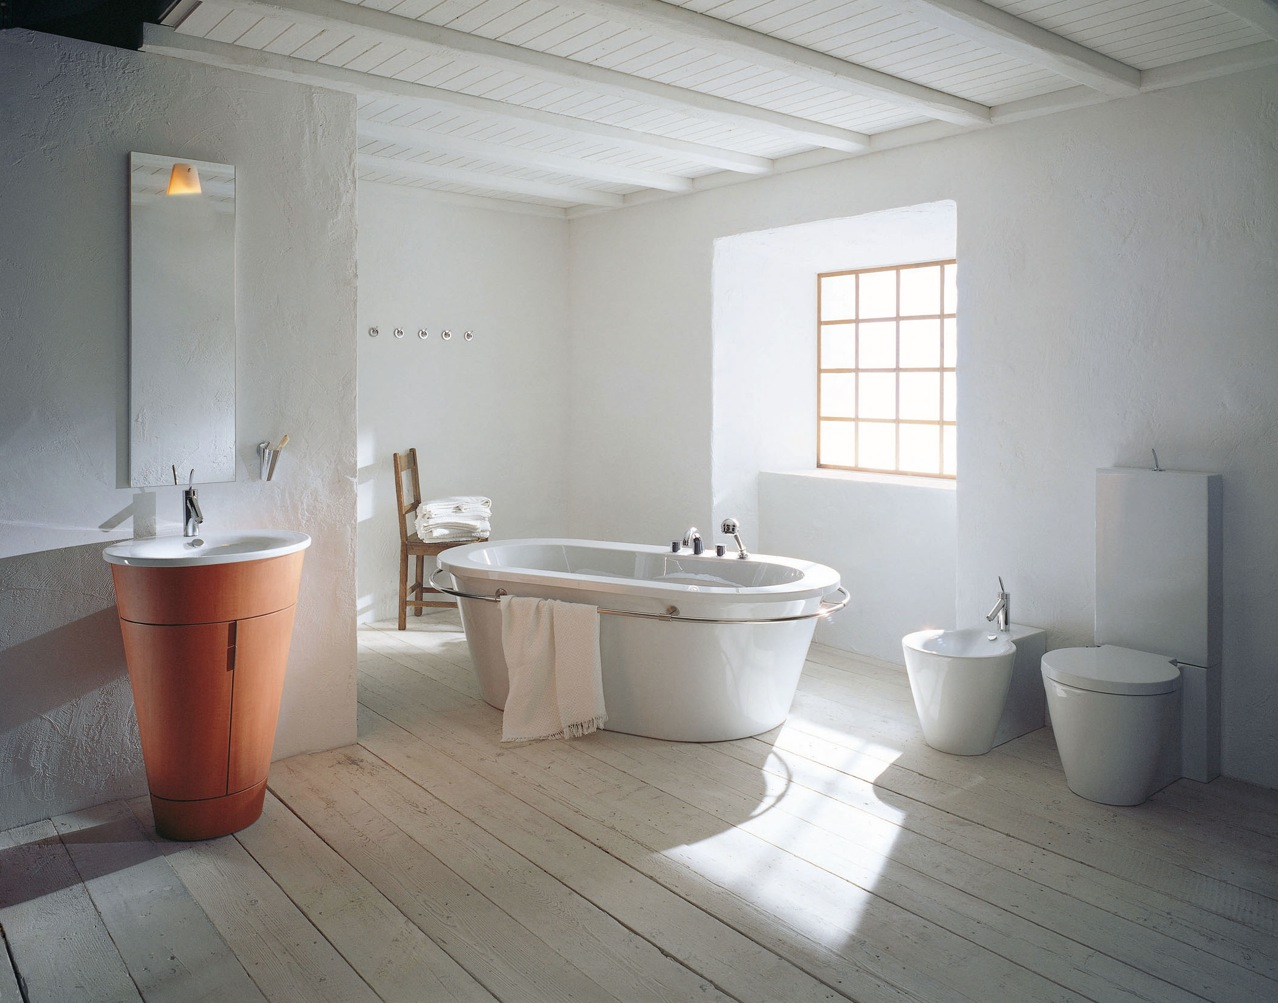 Philipe starck rustic modern bathroom decor interior for Bathroom decor pictures